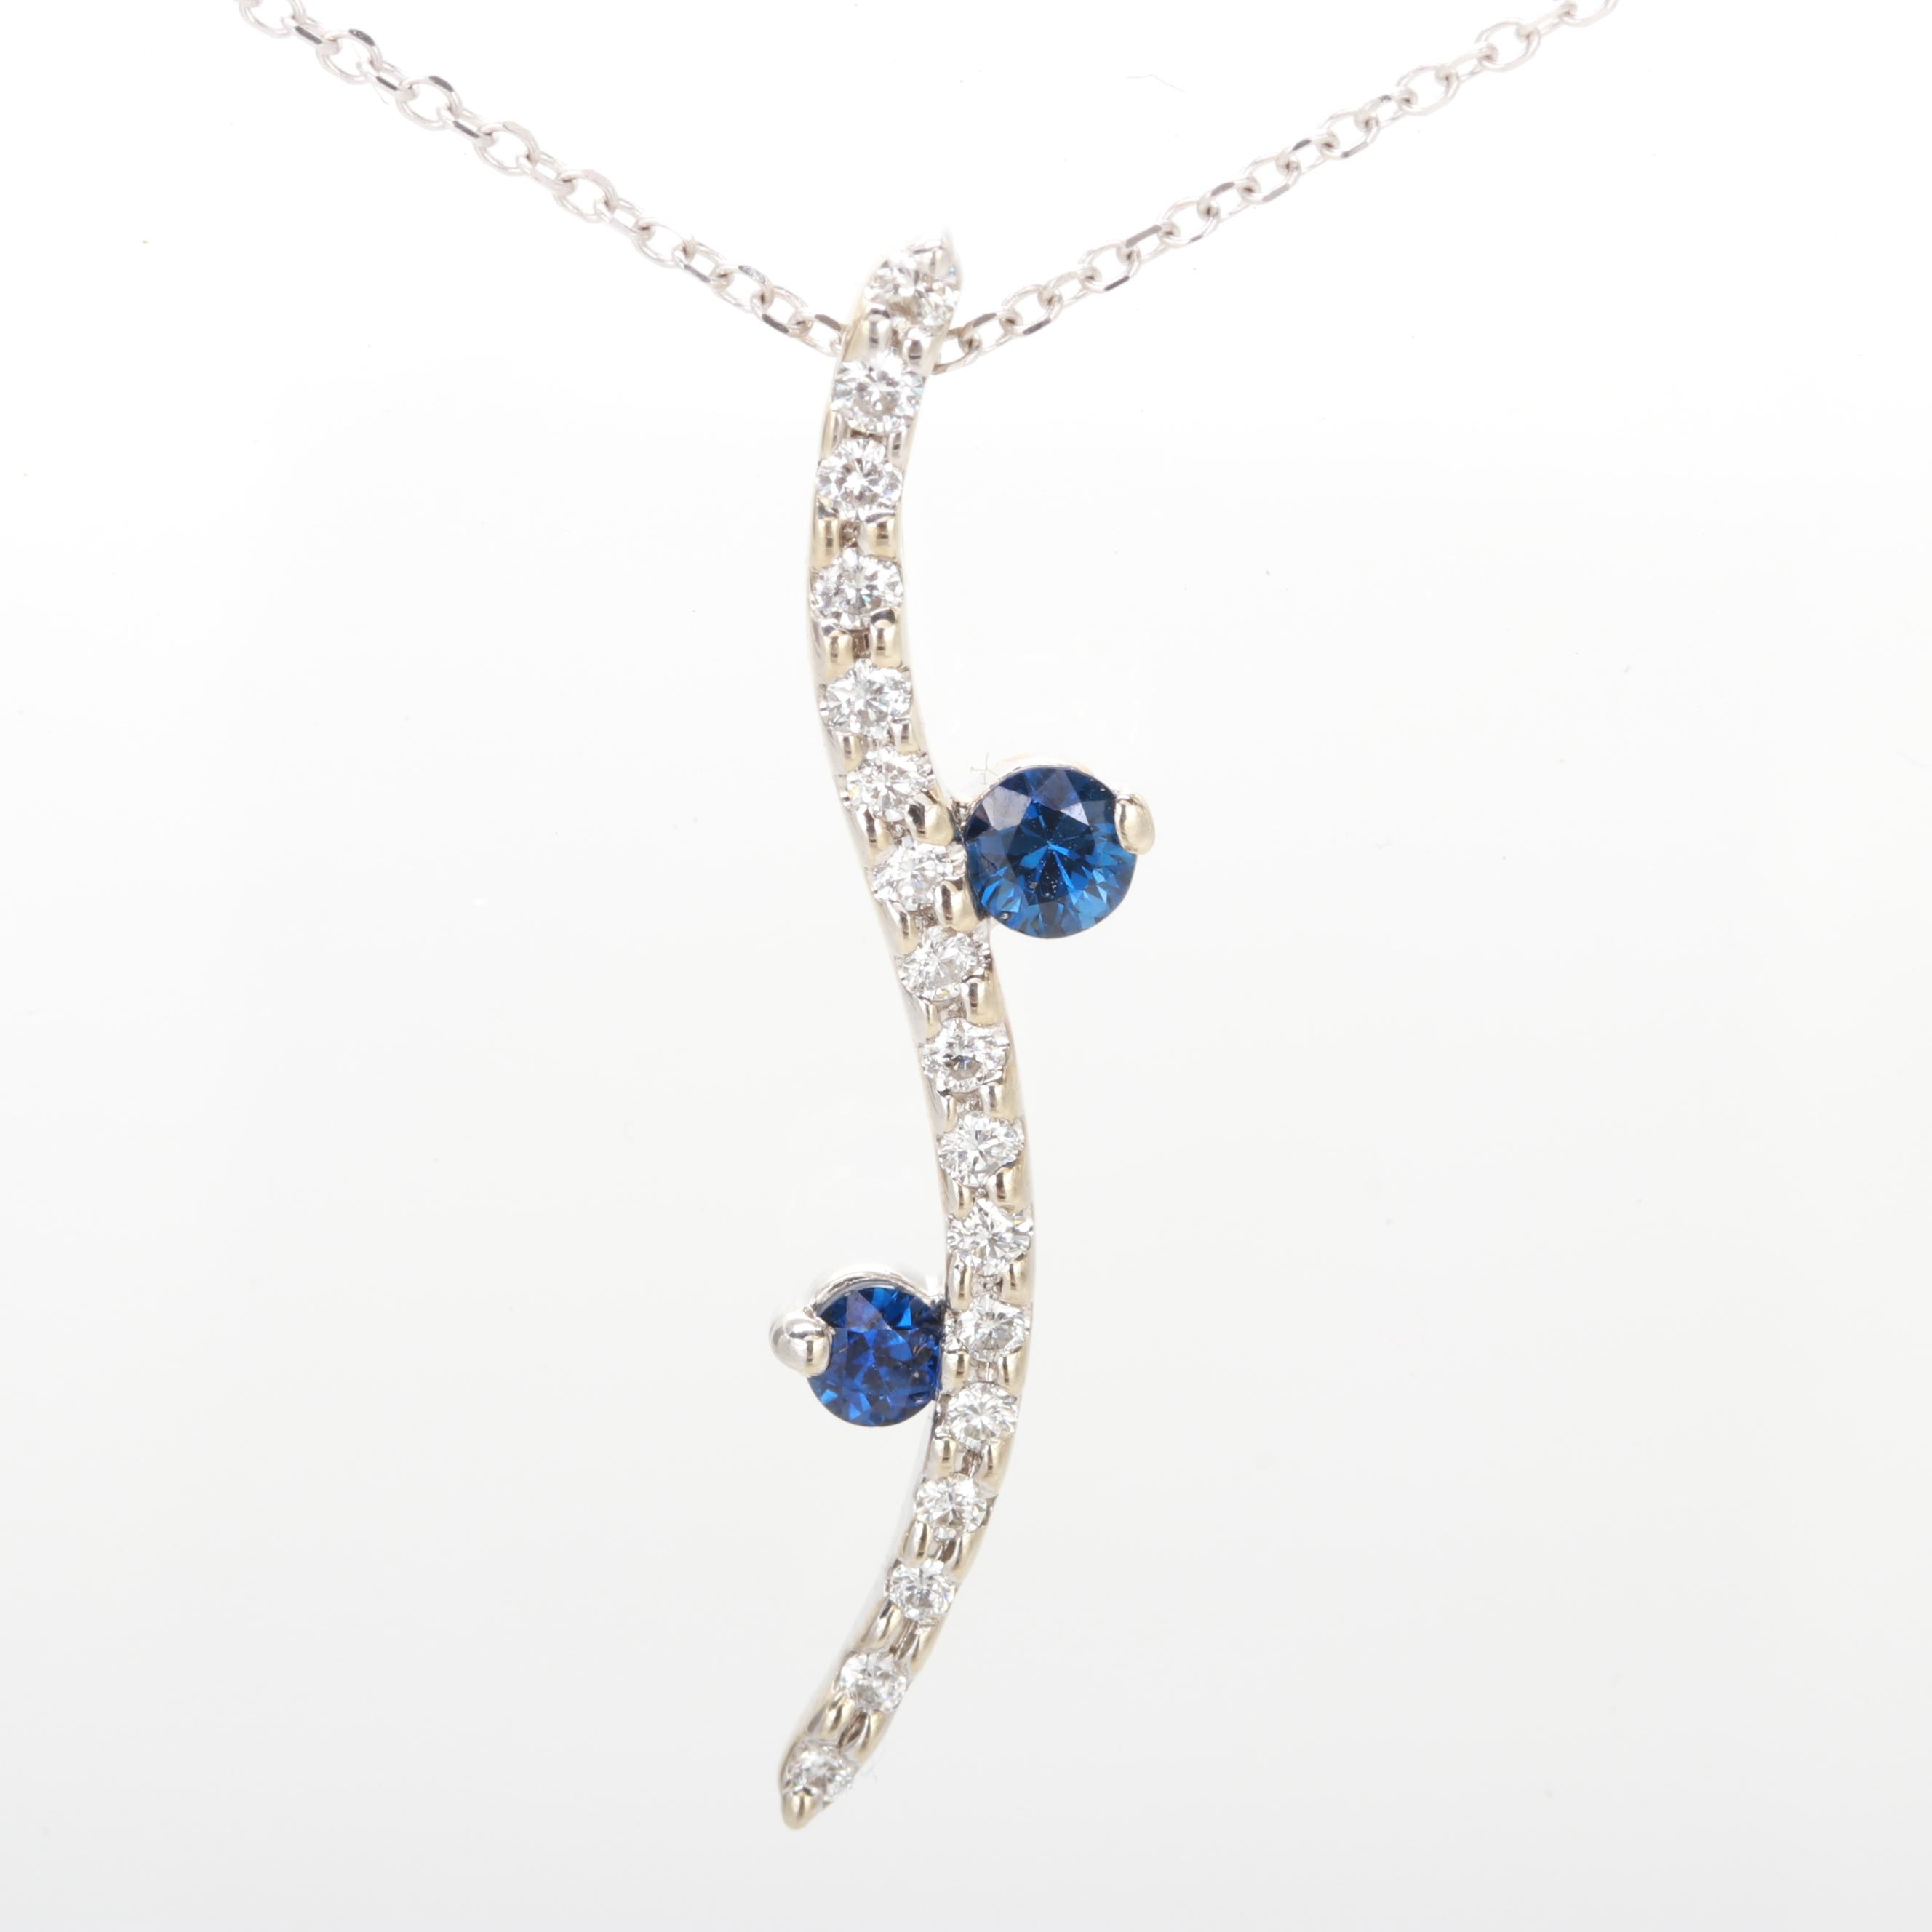 14K White Gold Diamond and Blue Sapphire Necklace